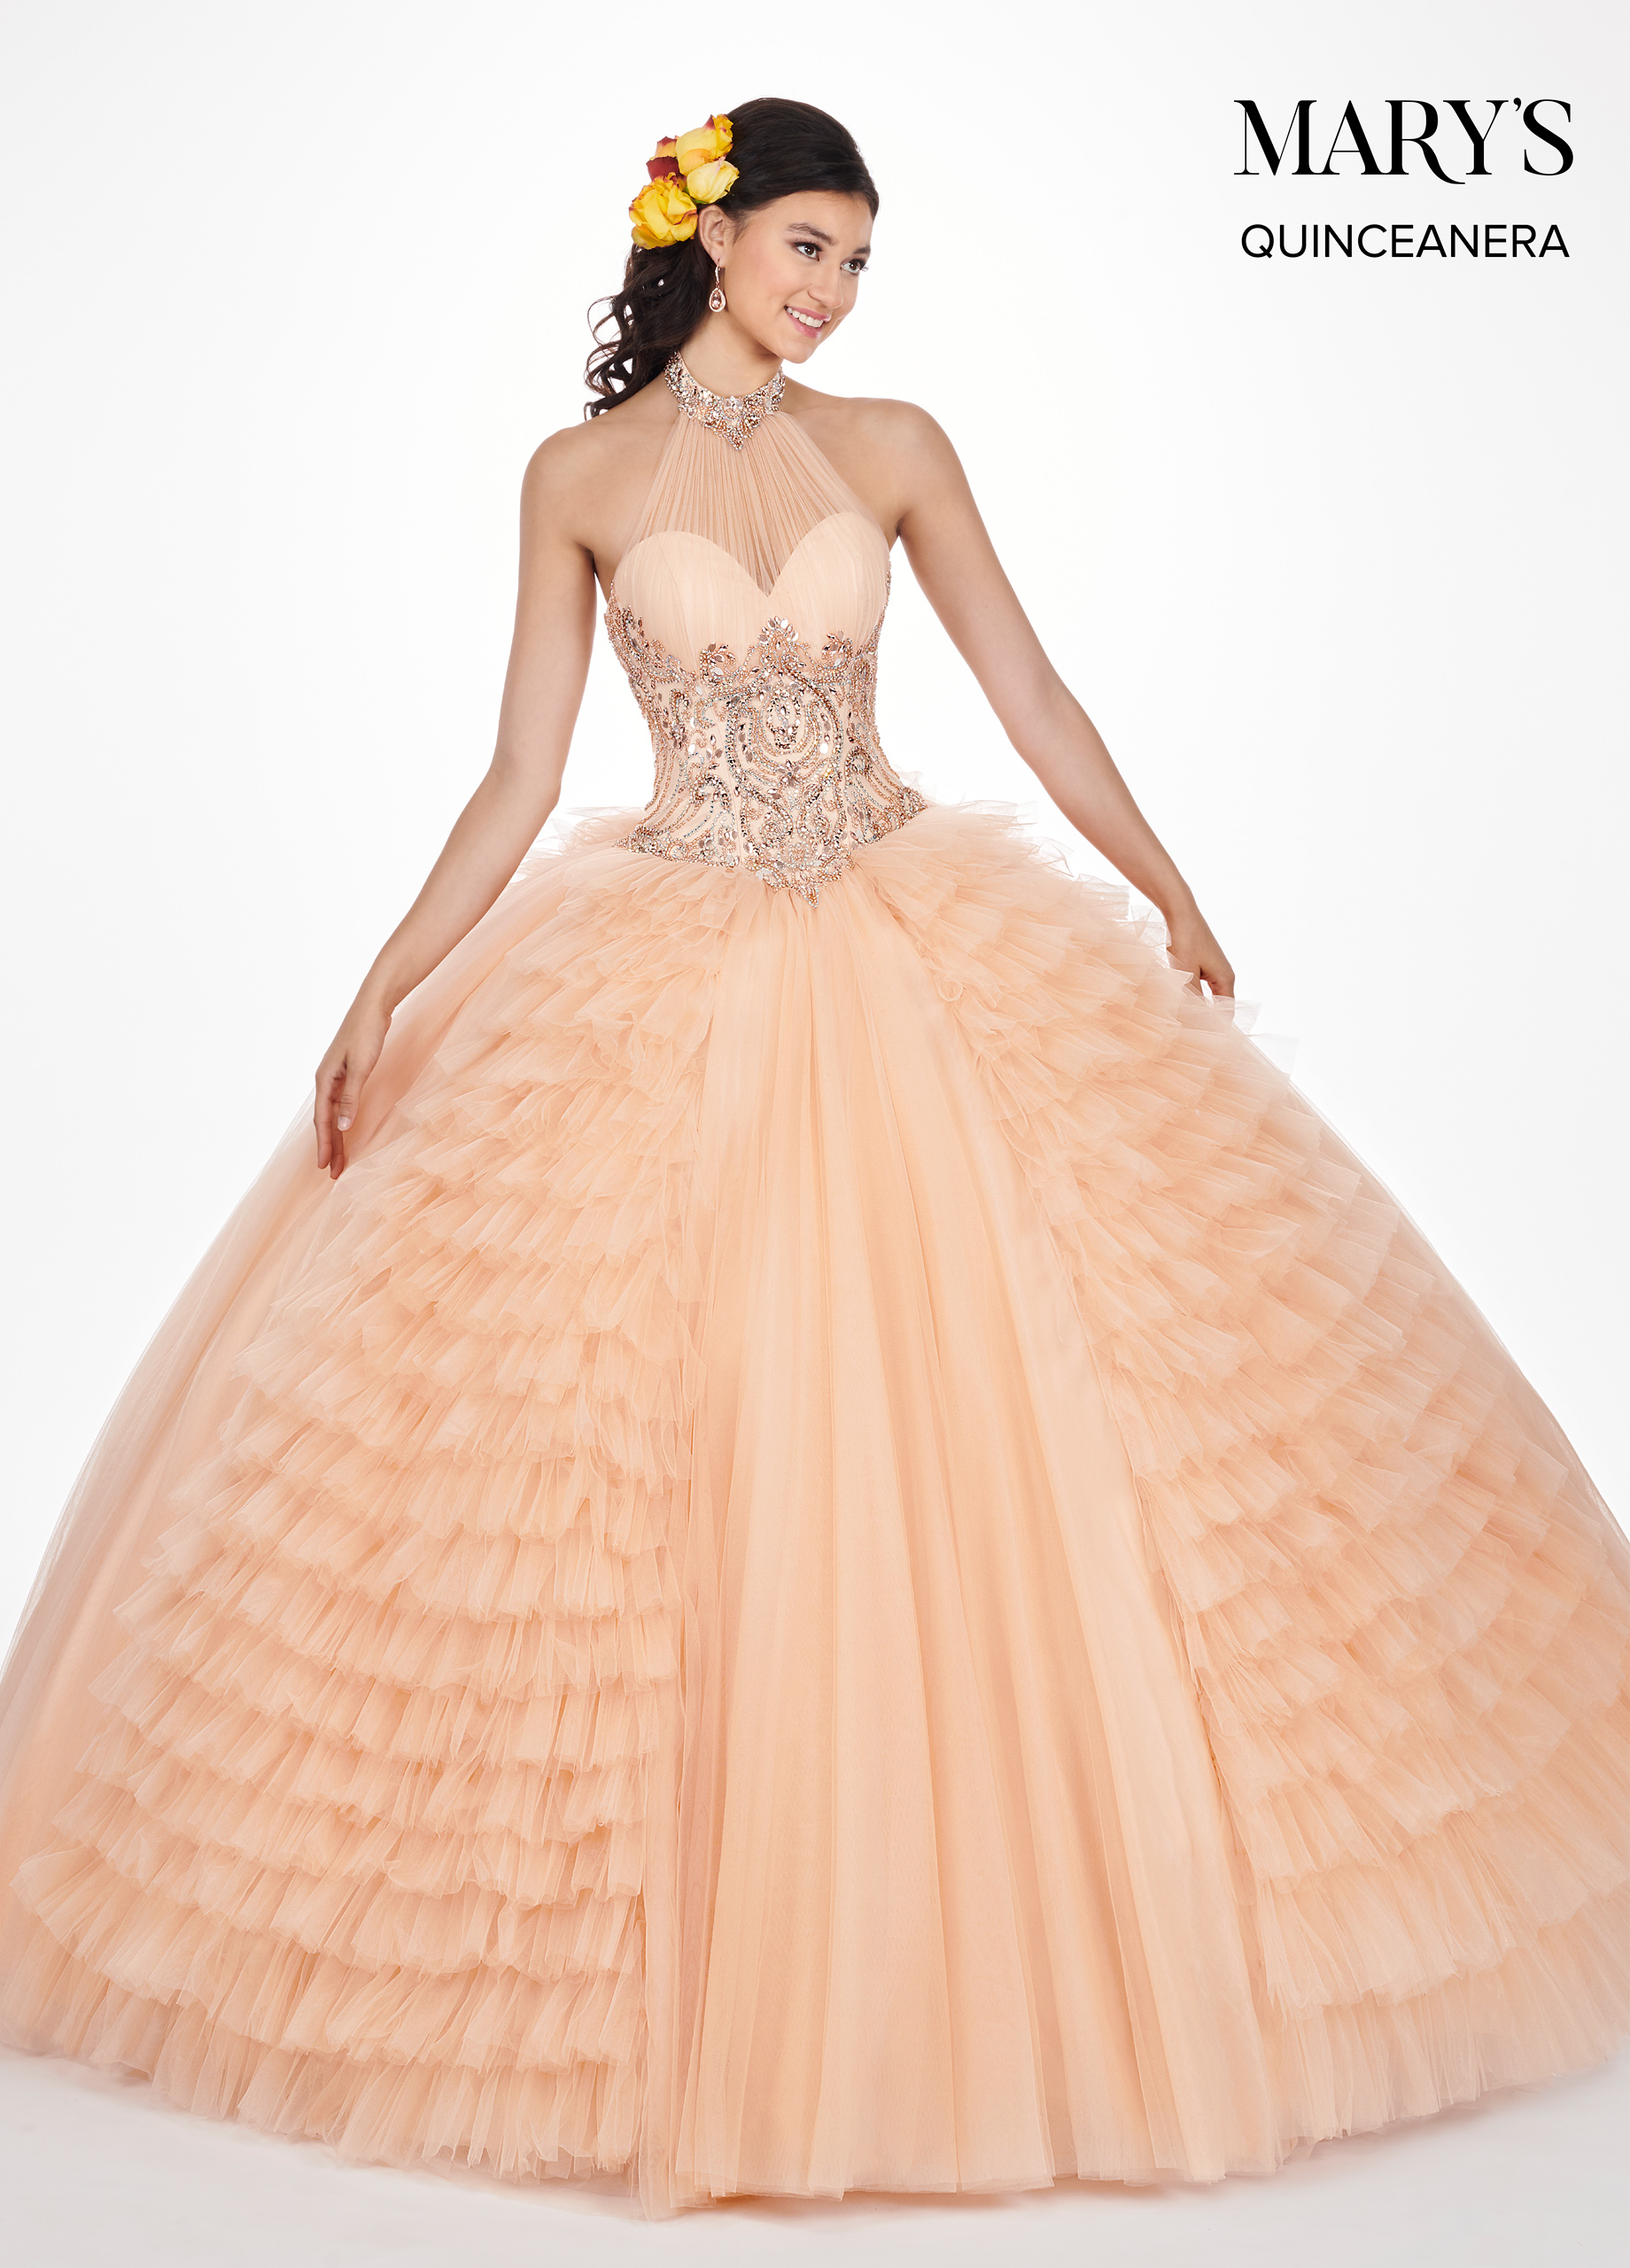 Marys Quinceanera Dresses | Mary's Quinceanera | Style - MQ2063